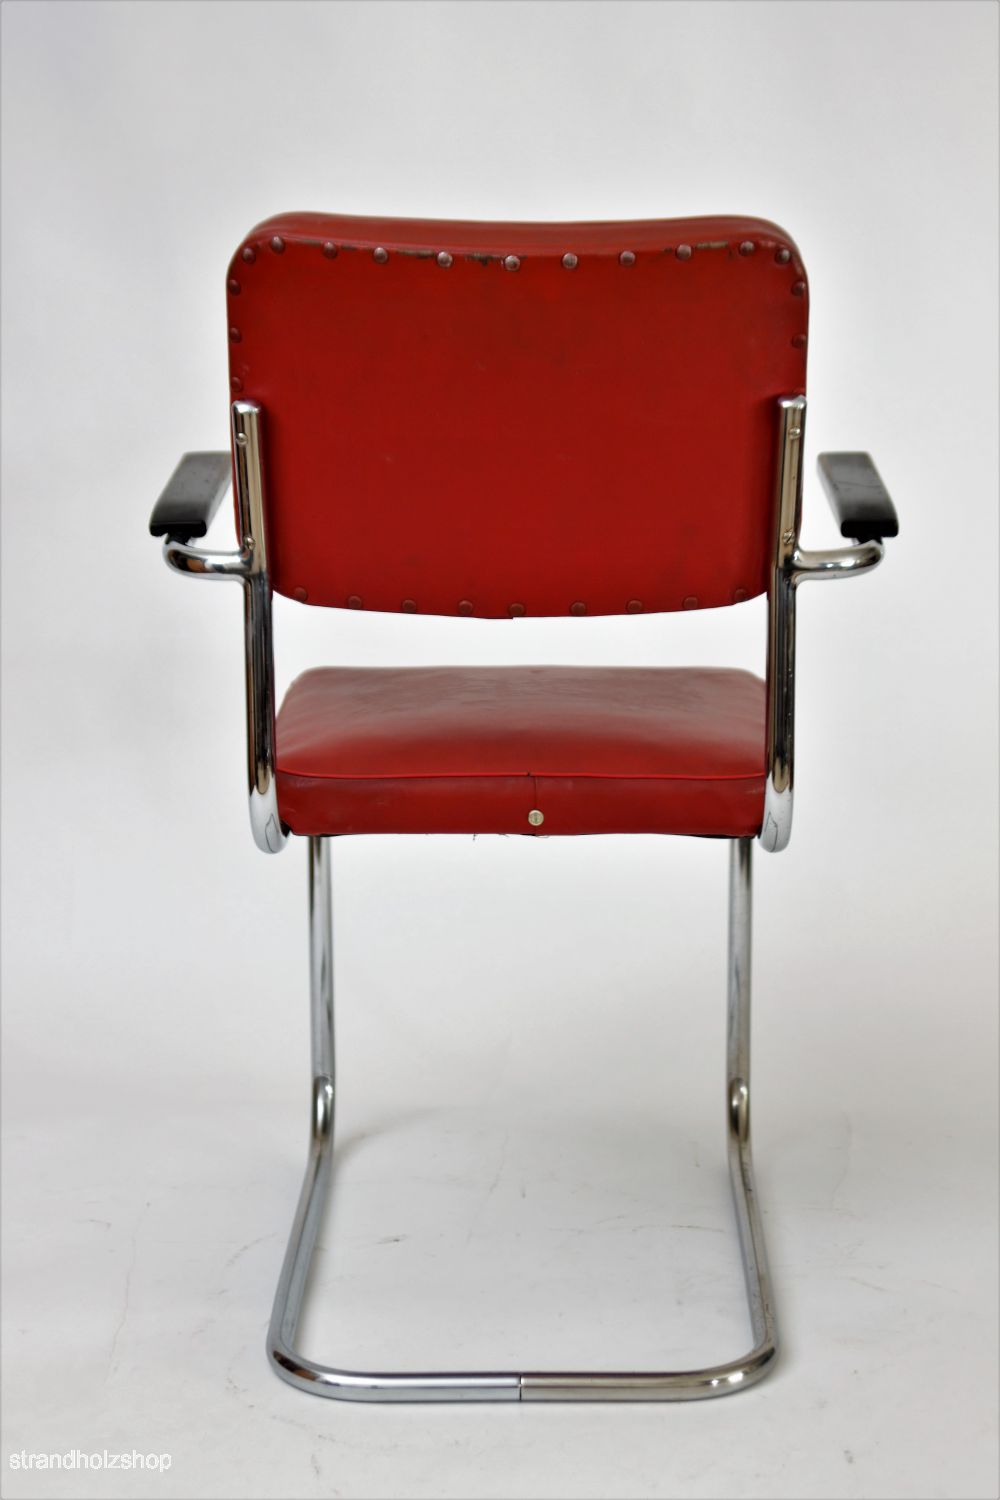 Mauser chair back view